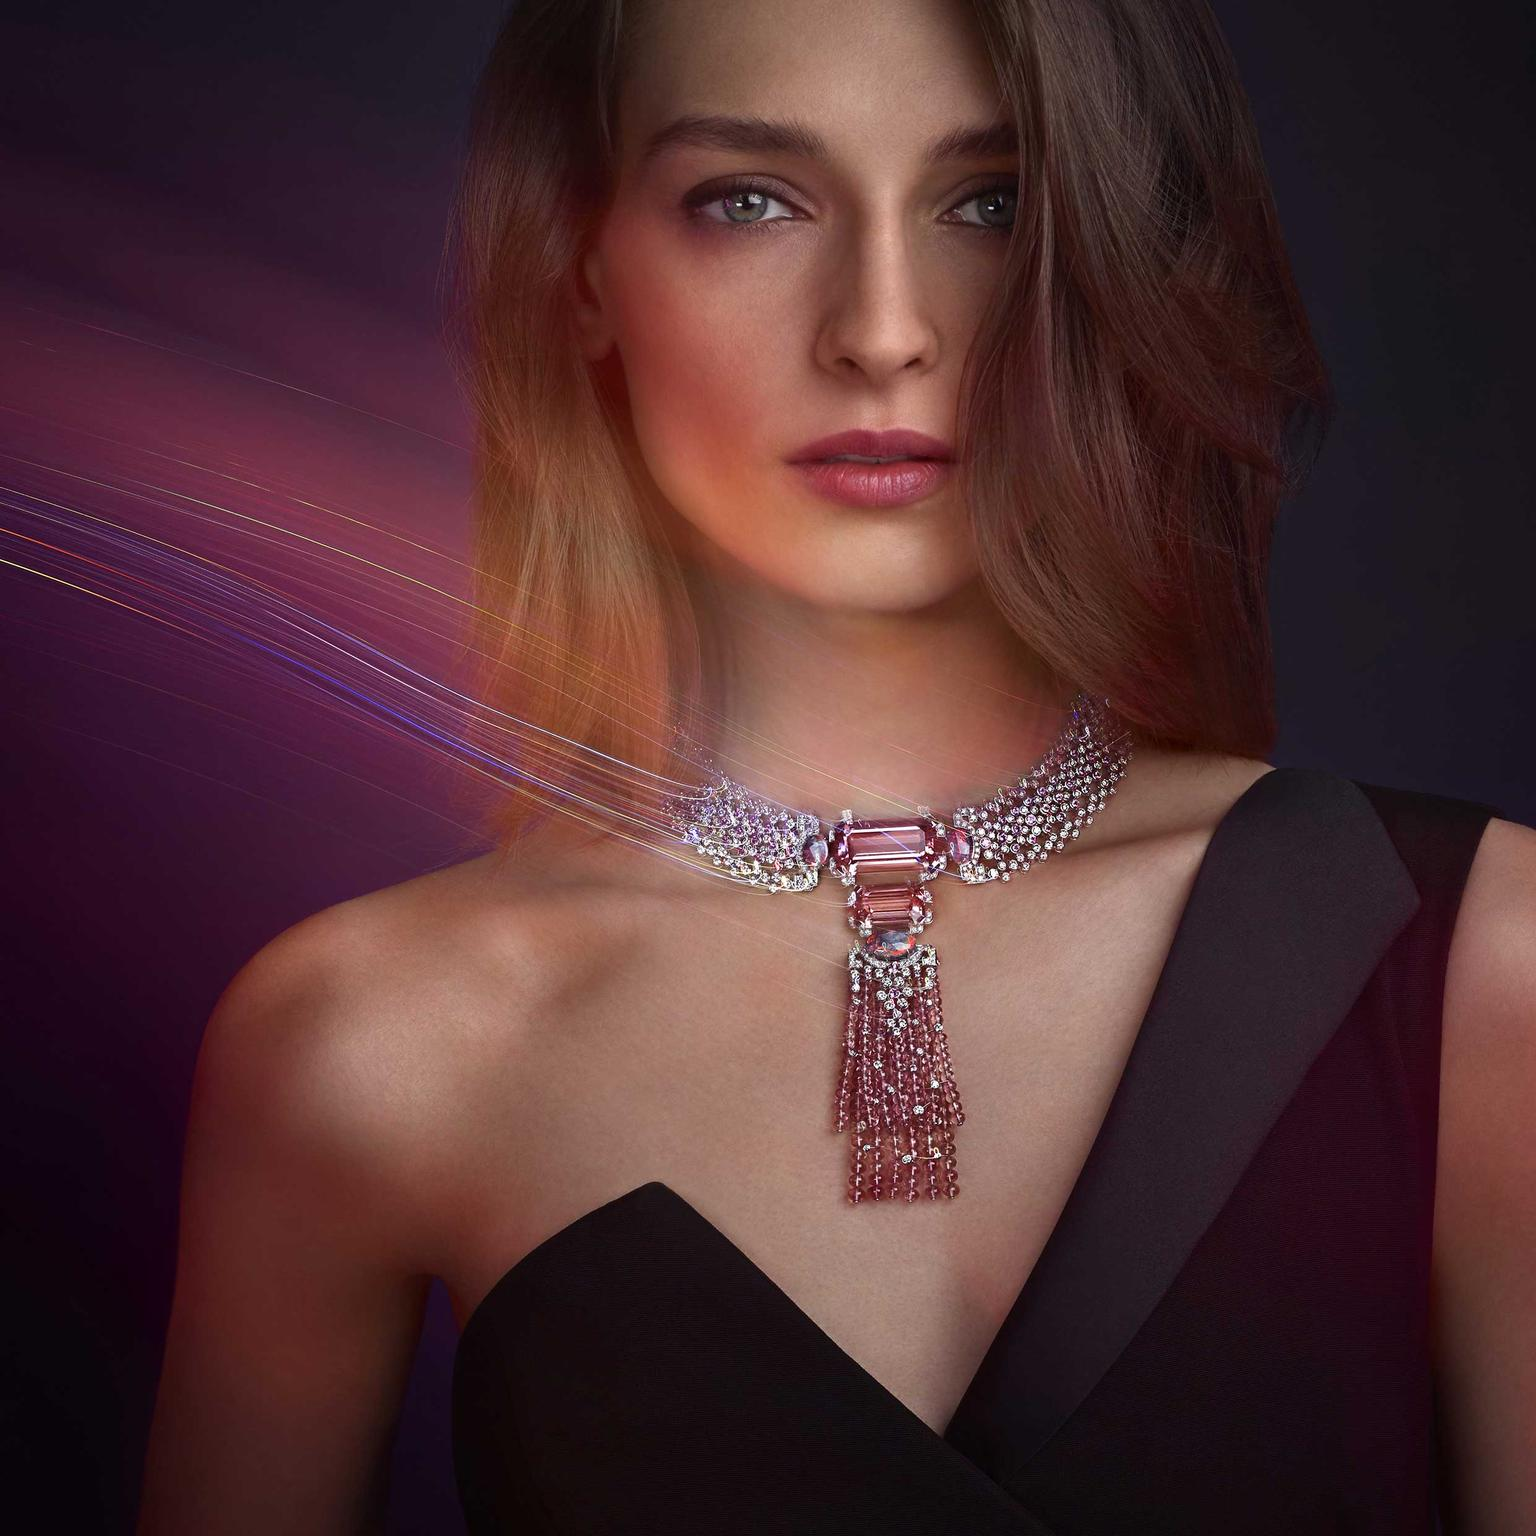 Cartier Yoshino necklace with morganite, opals, tourmalines and pink sapphires from Coloratura collection 2018